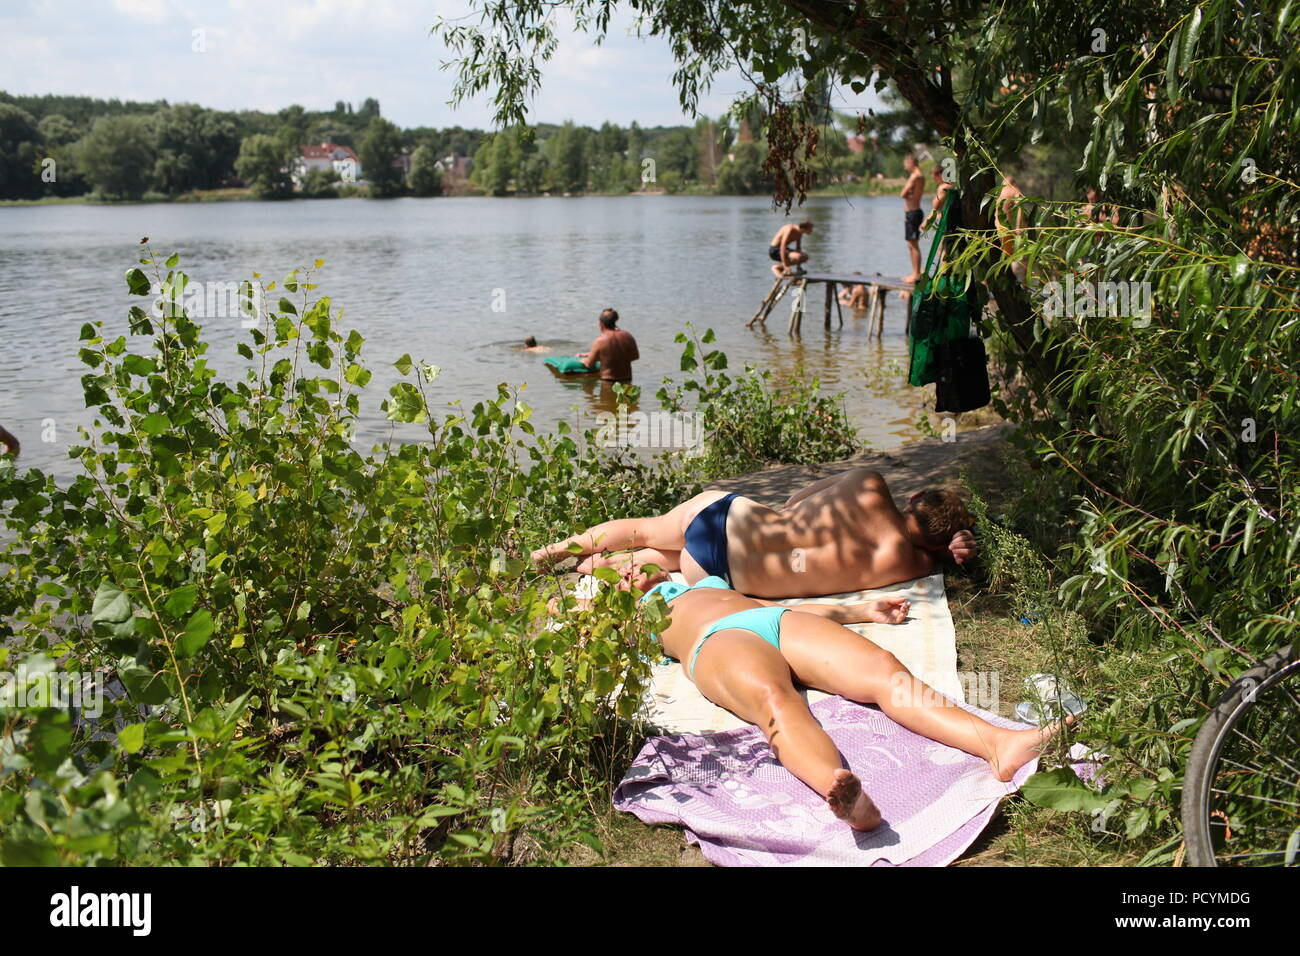 Young Ukrainian woman and man rest on bank of lake in Kiev enjoying delightful summer weather sunbath while other folks on beach fish and have fun - Stock Image